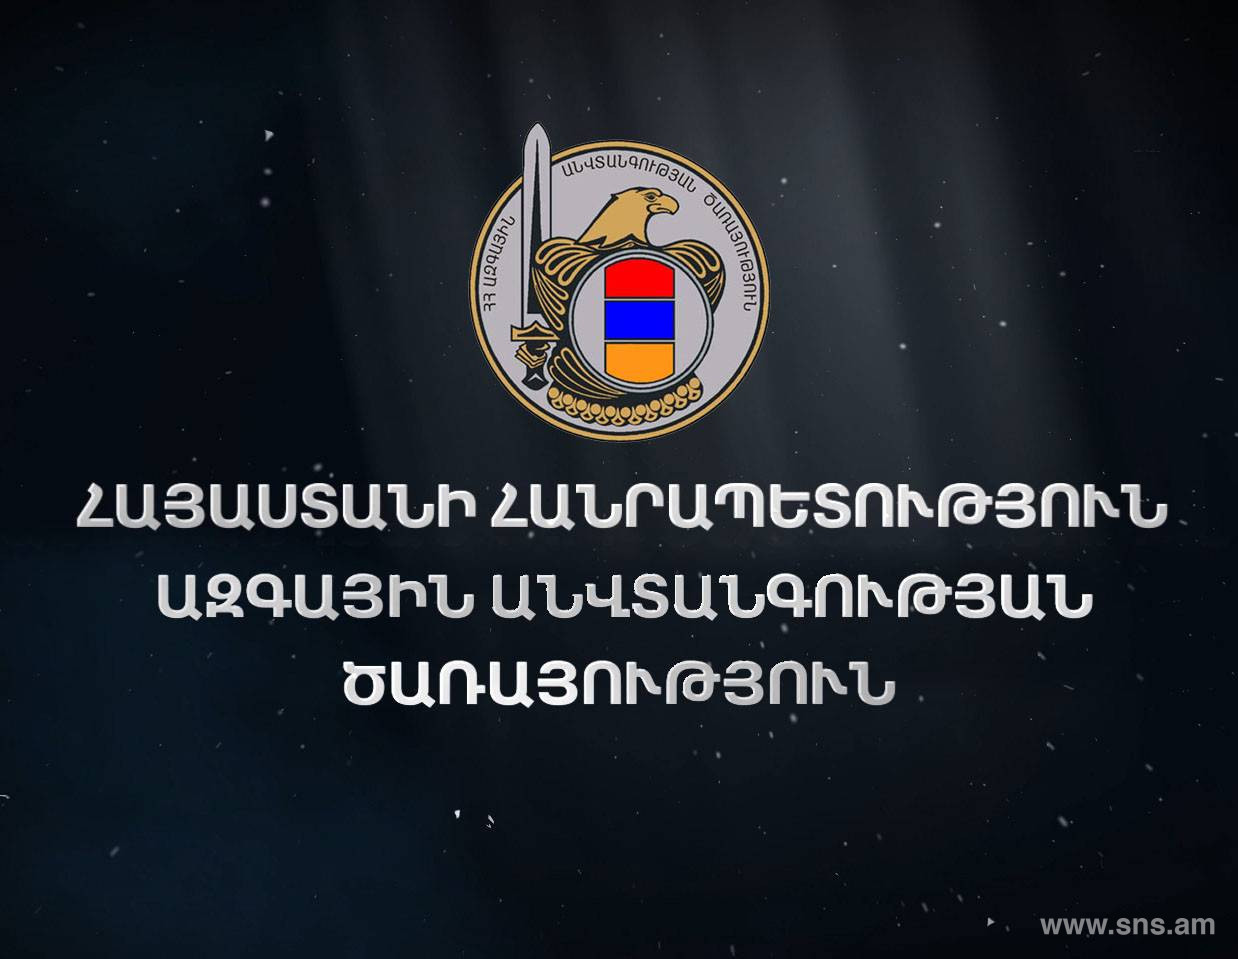 The National Security Service is not Registered in any Social web Network